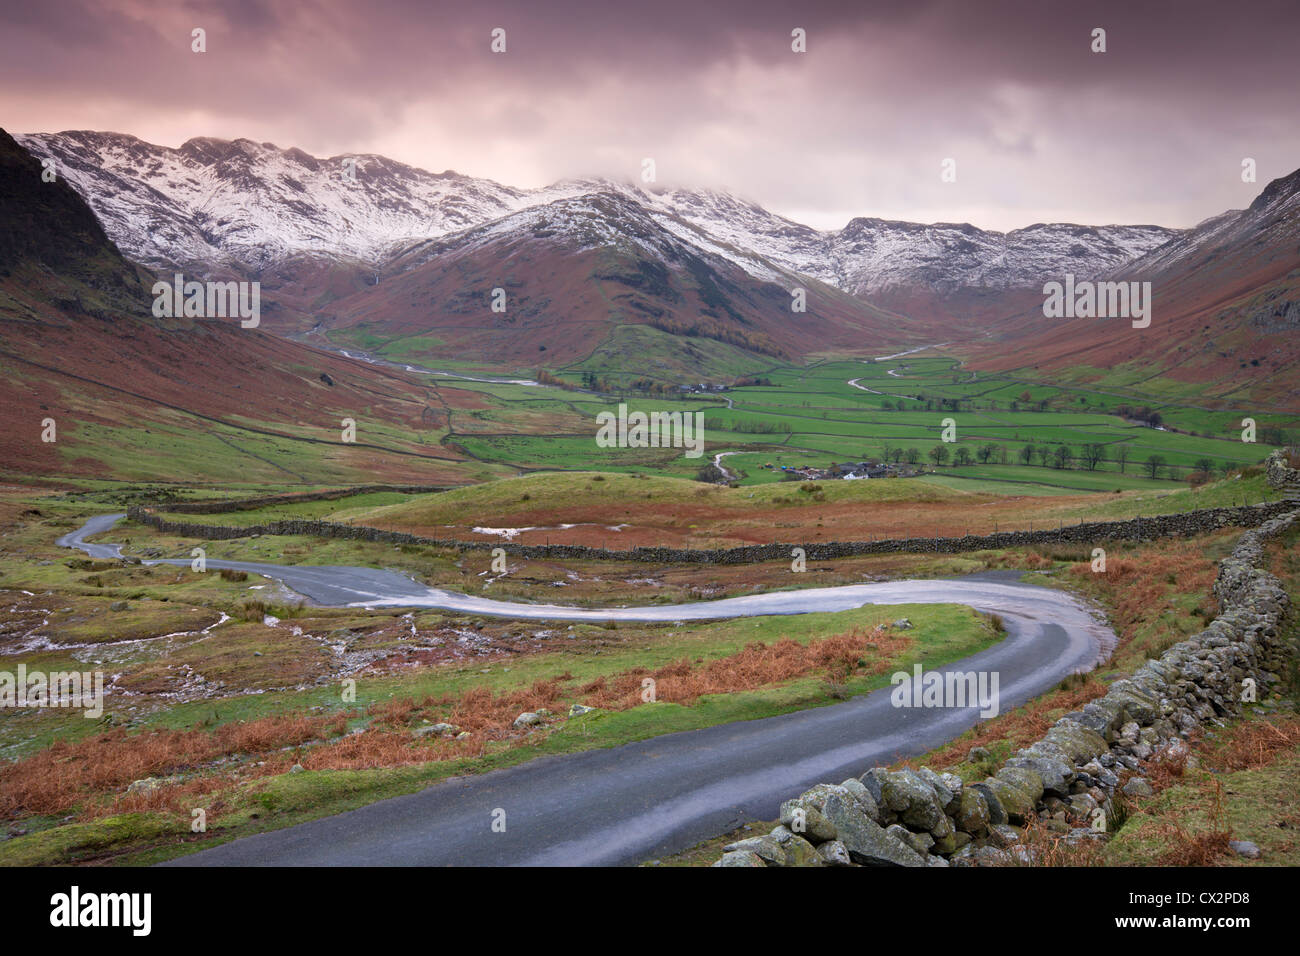 Small winding road leading into the Langdale Valley, surrounded by snow clad mountains, Lake District - Stock Image